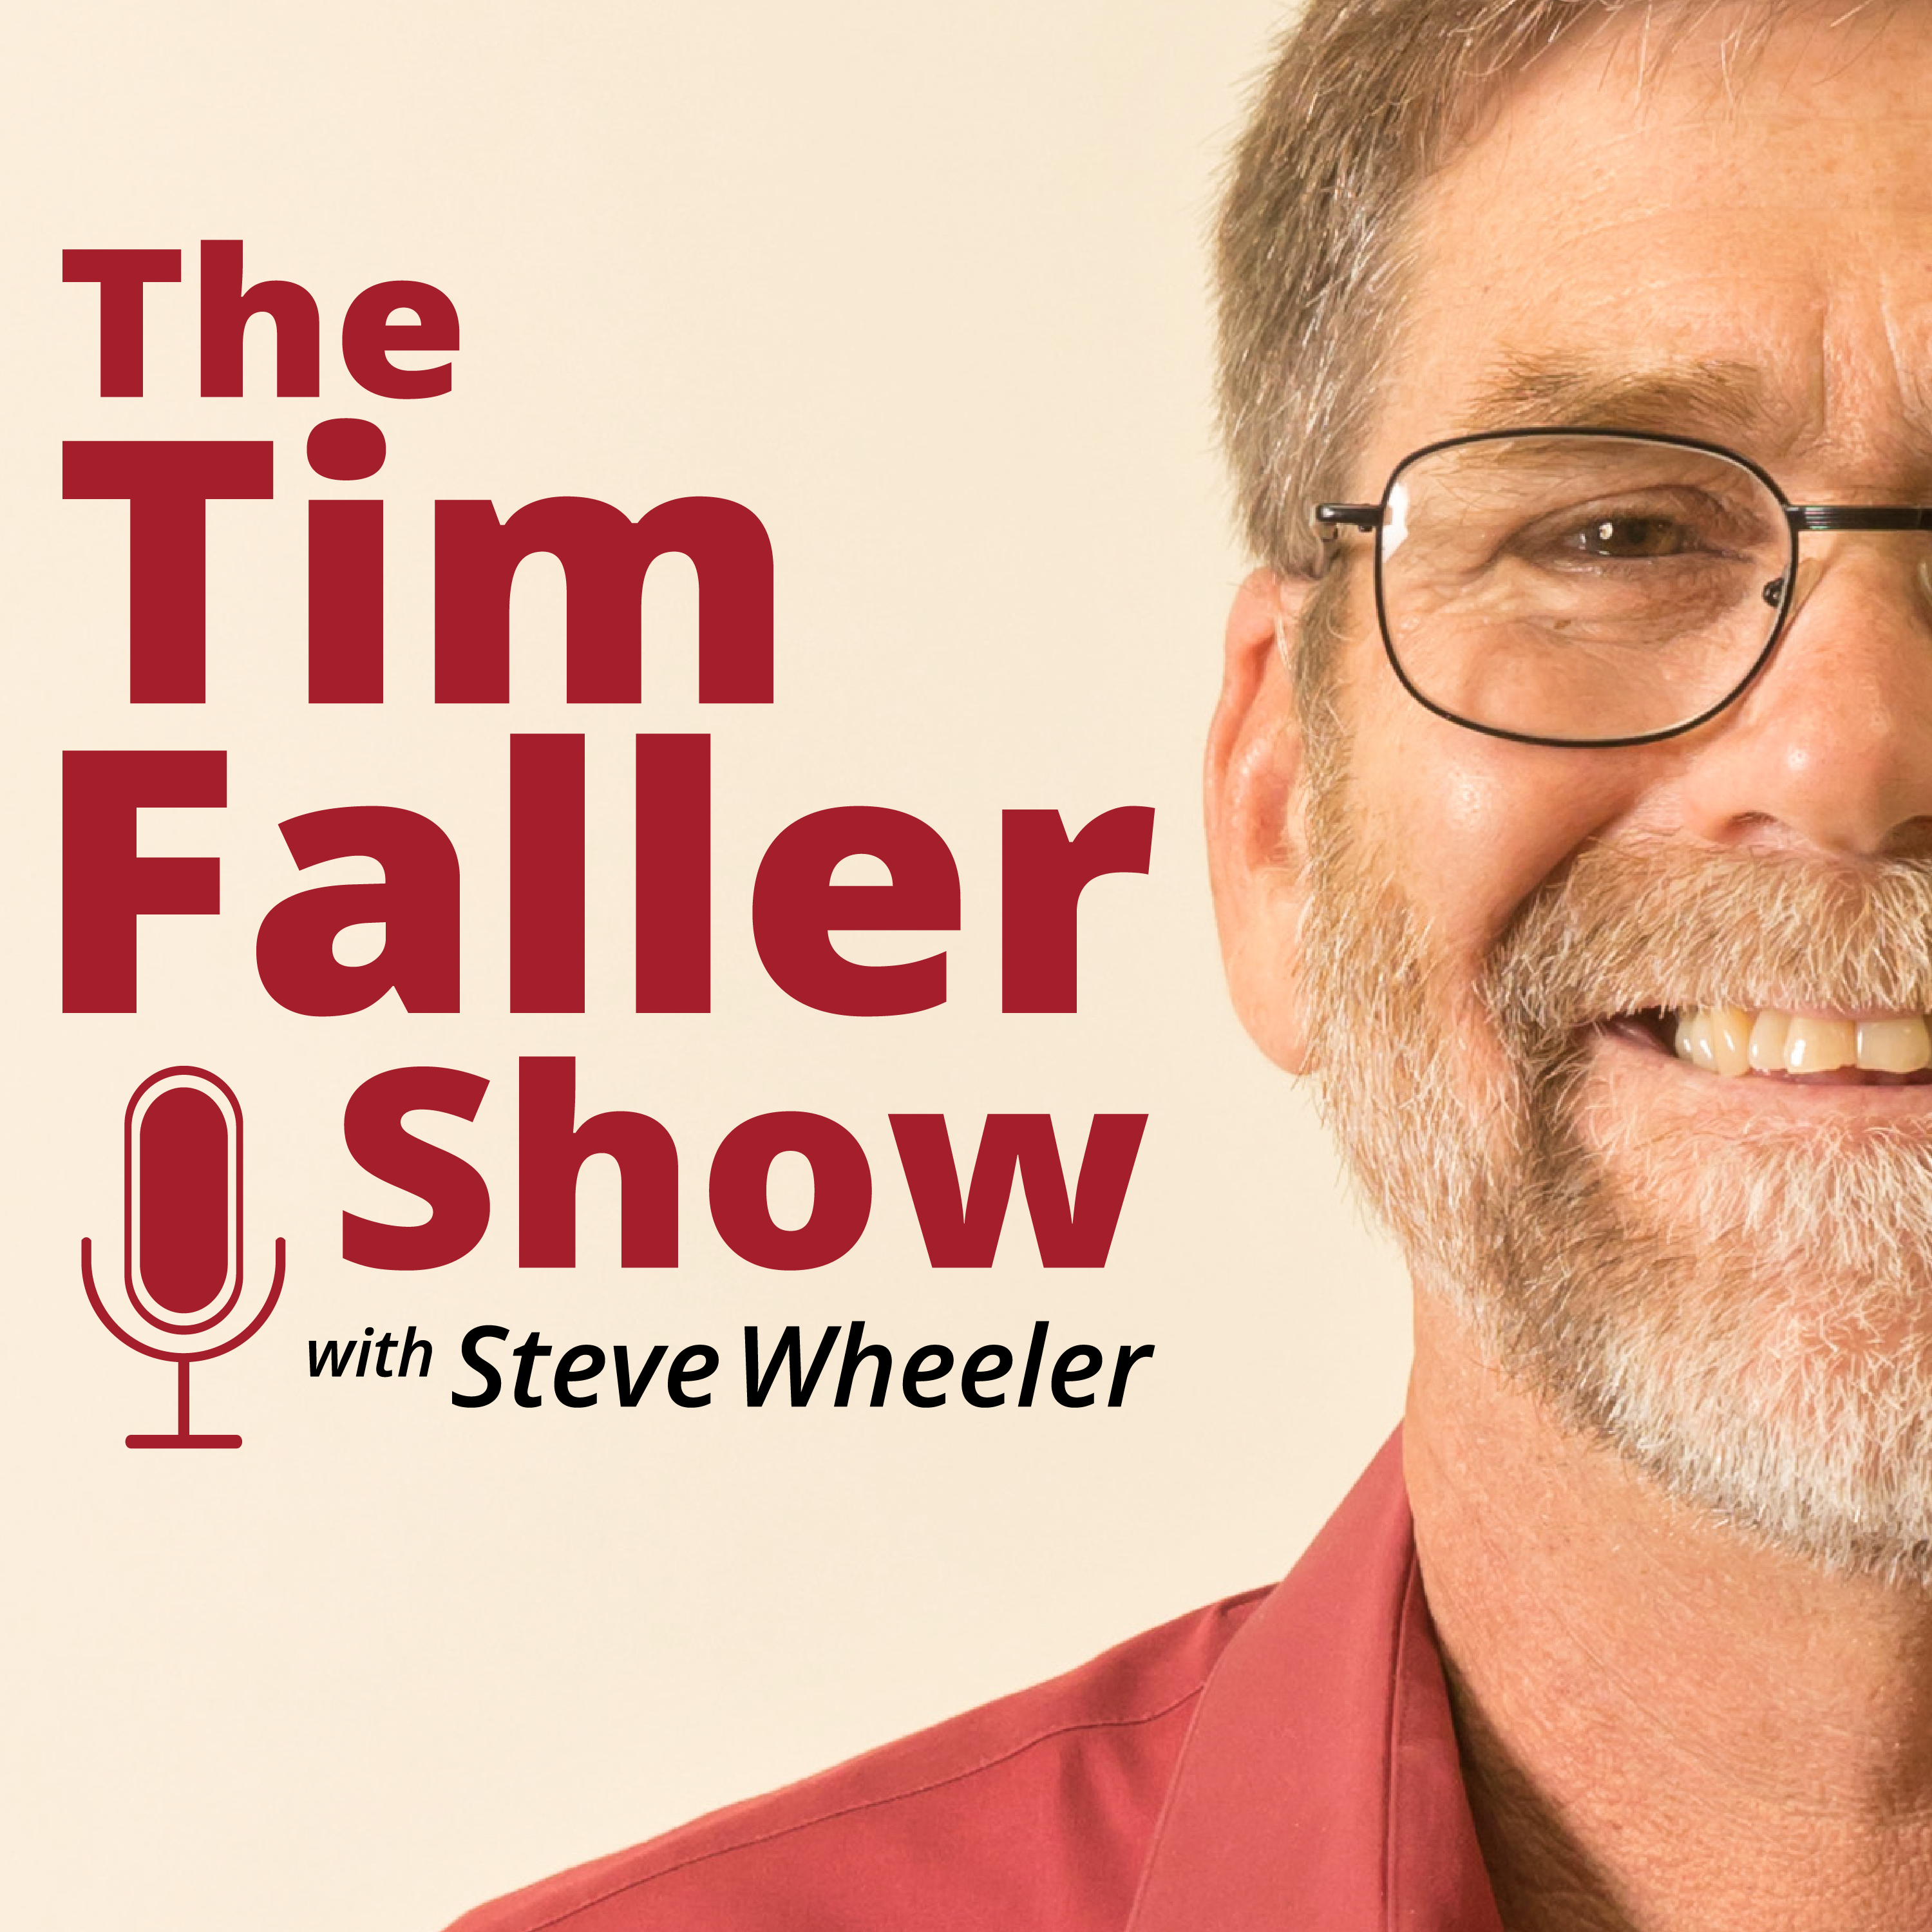 The Tim Faller Show | Listen via Stitcher for Podcasts